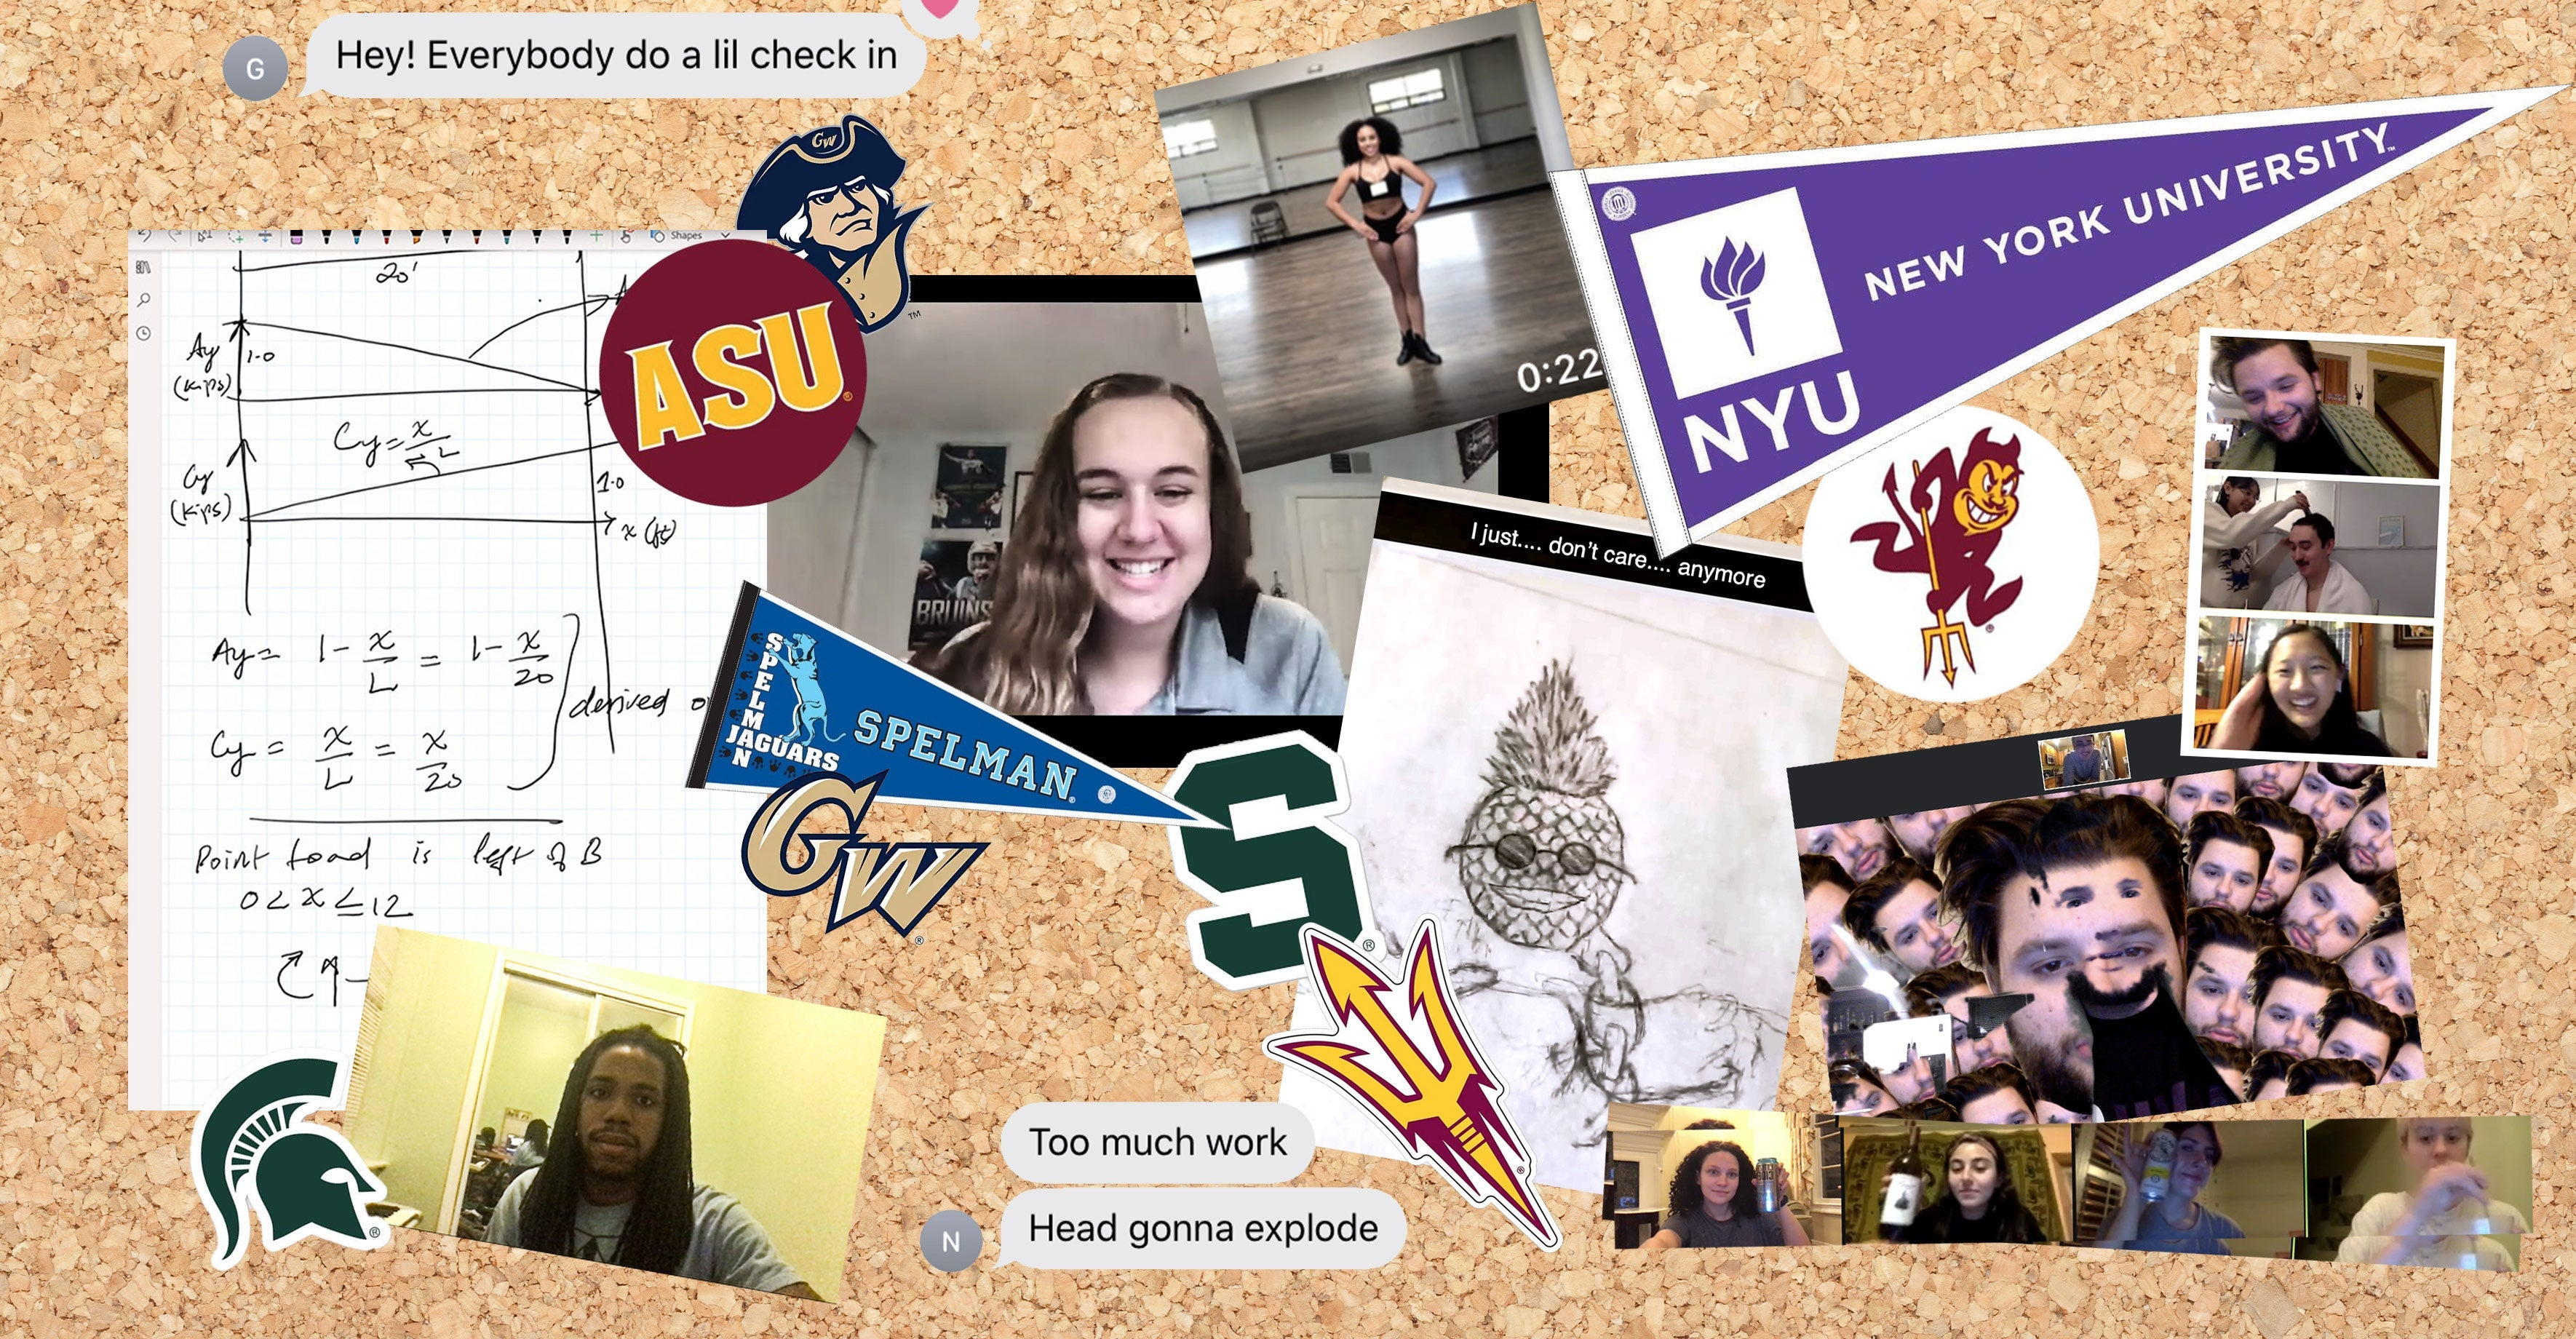 A bulletin board filled with lots of college memorabilia.